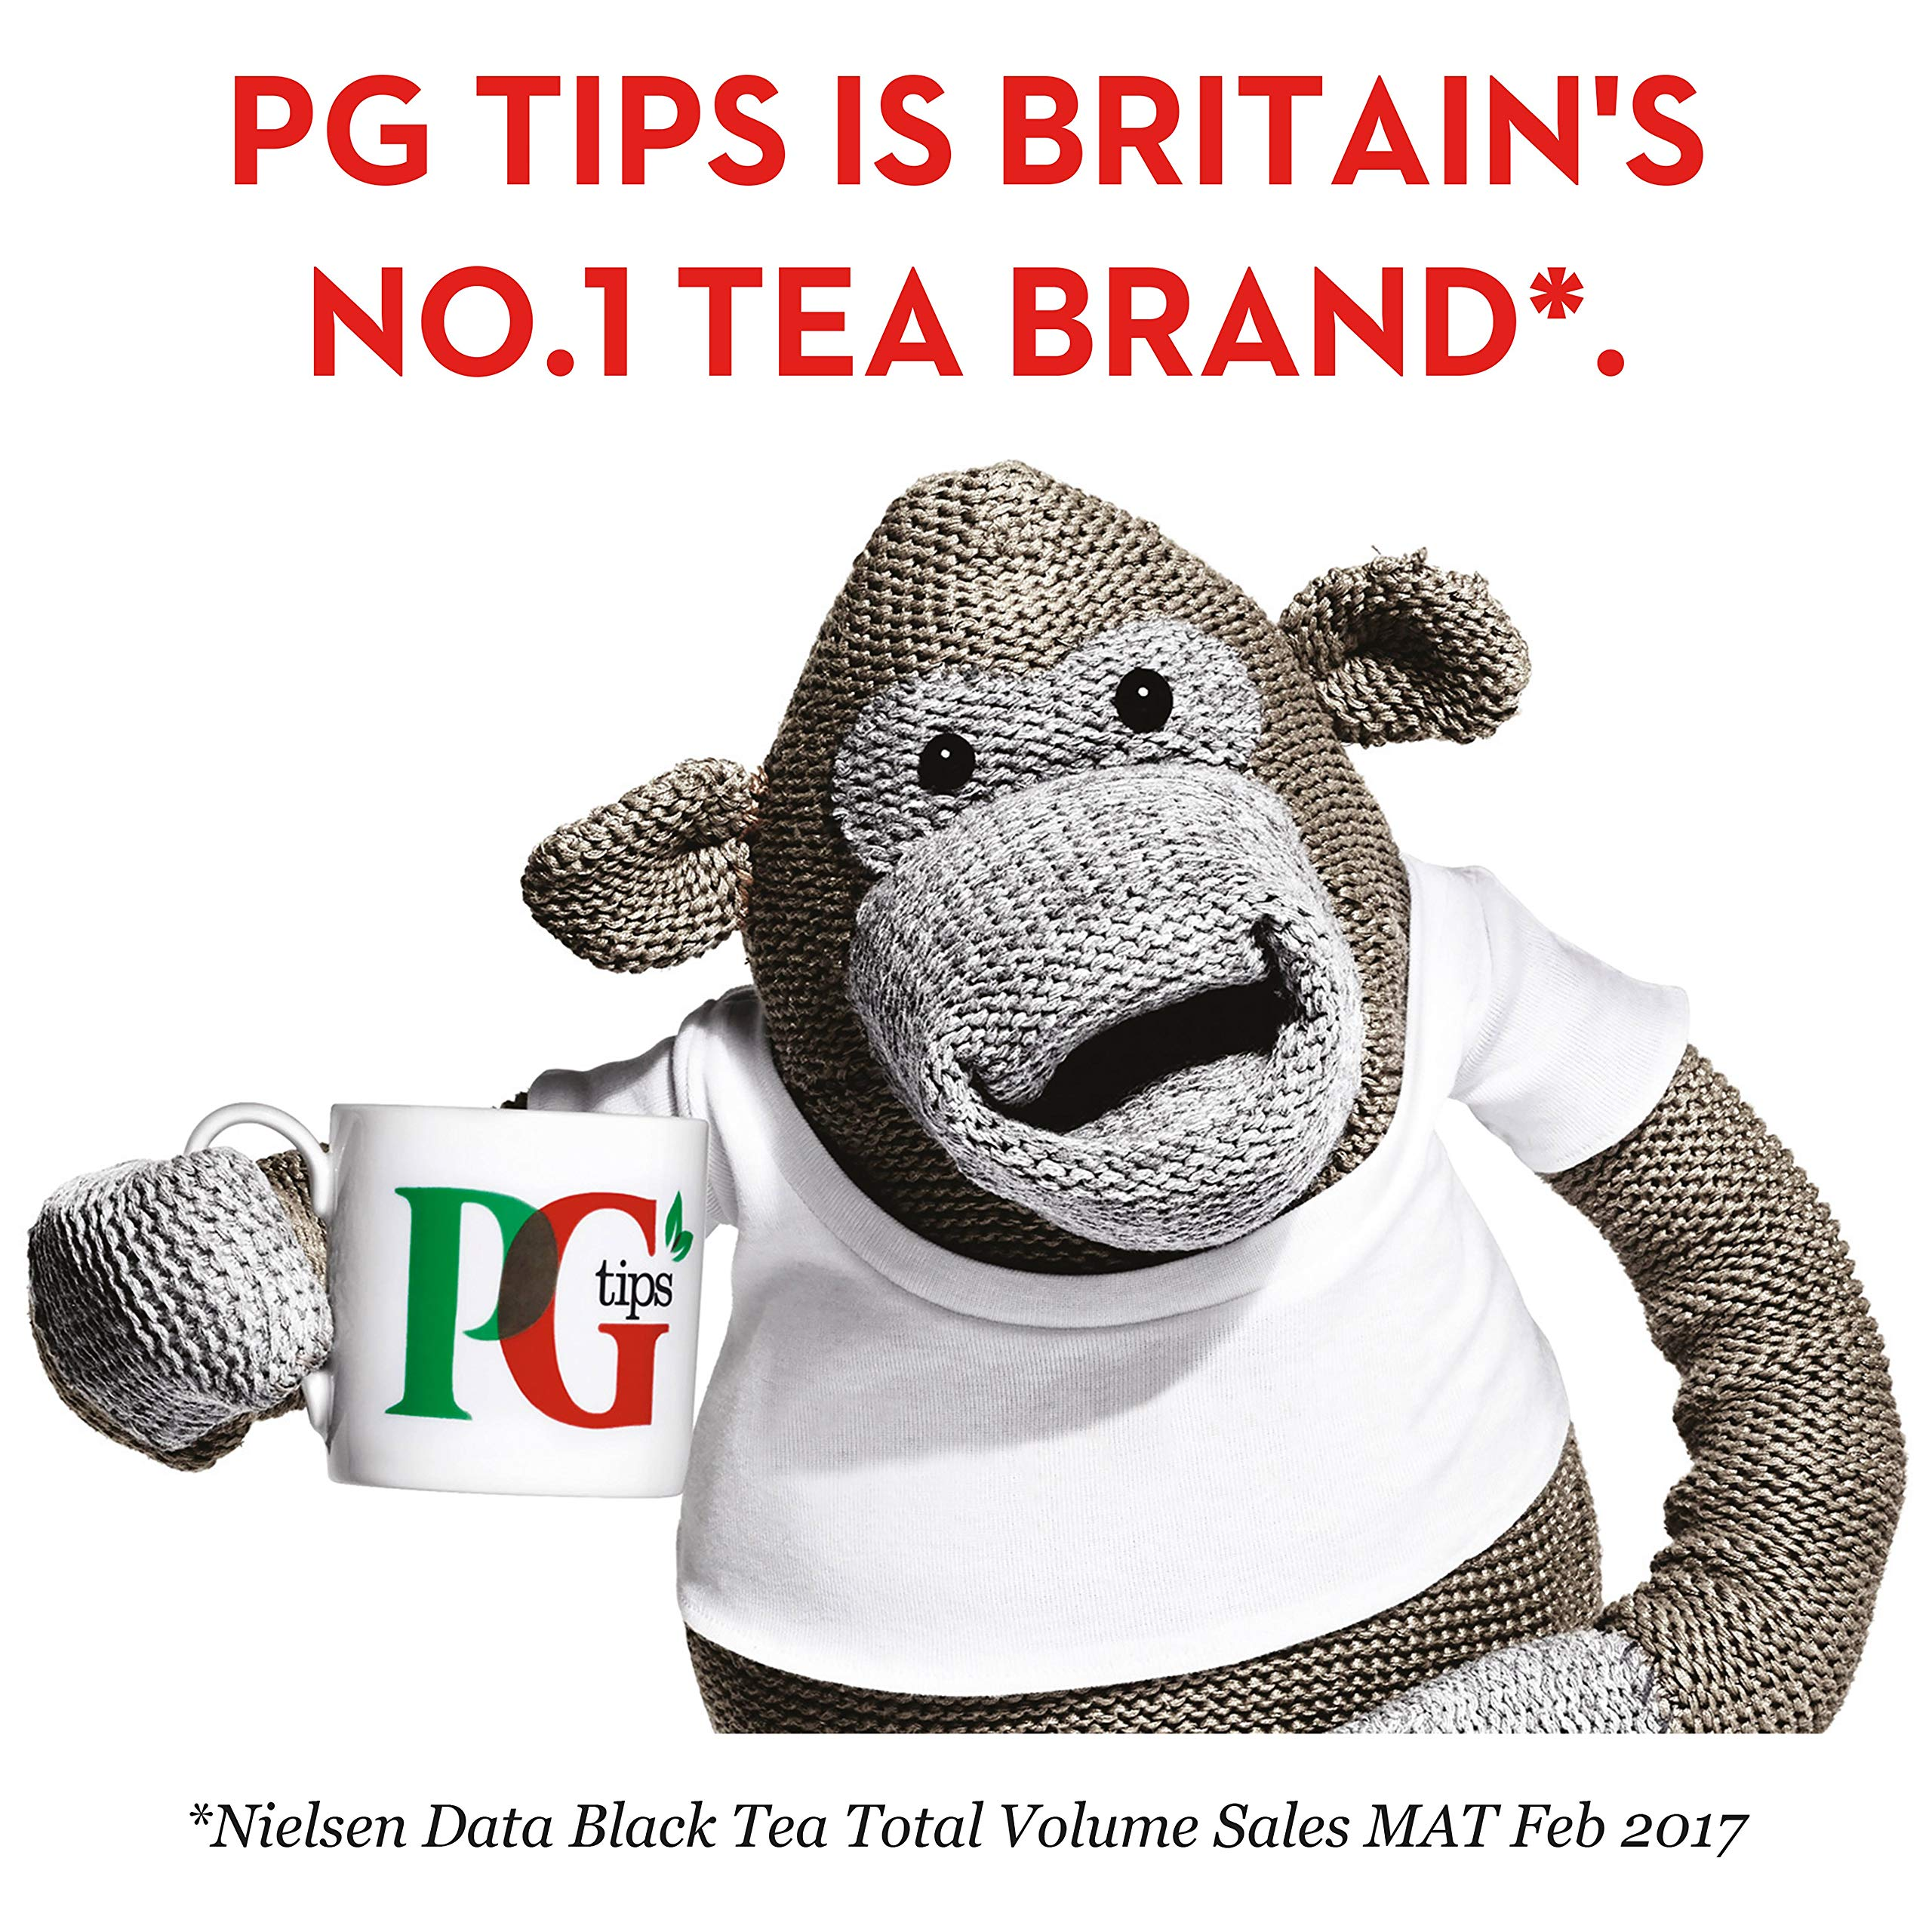 PG Tips One Cup Pyramid Tea Bags (Pack of 1, Total 1100 Tea Bags) by PG Tips (Image #4)